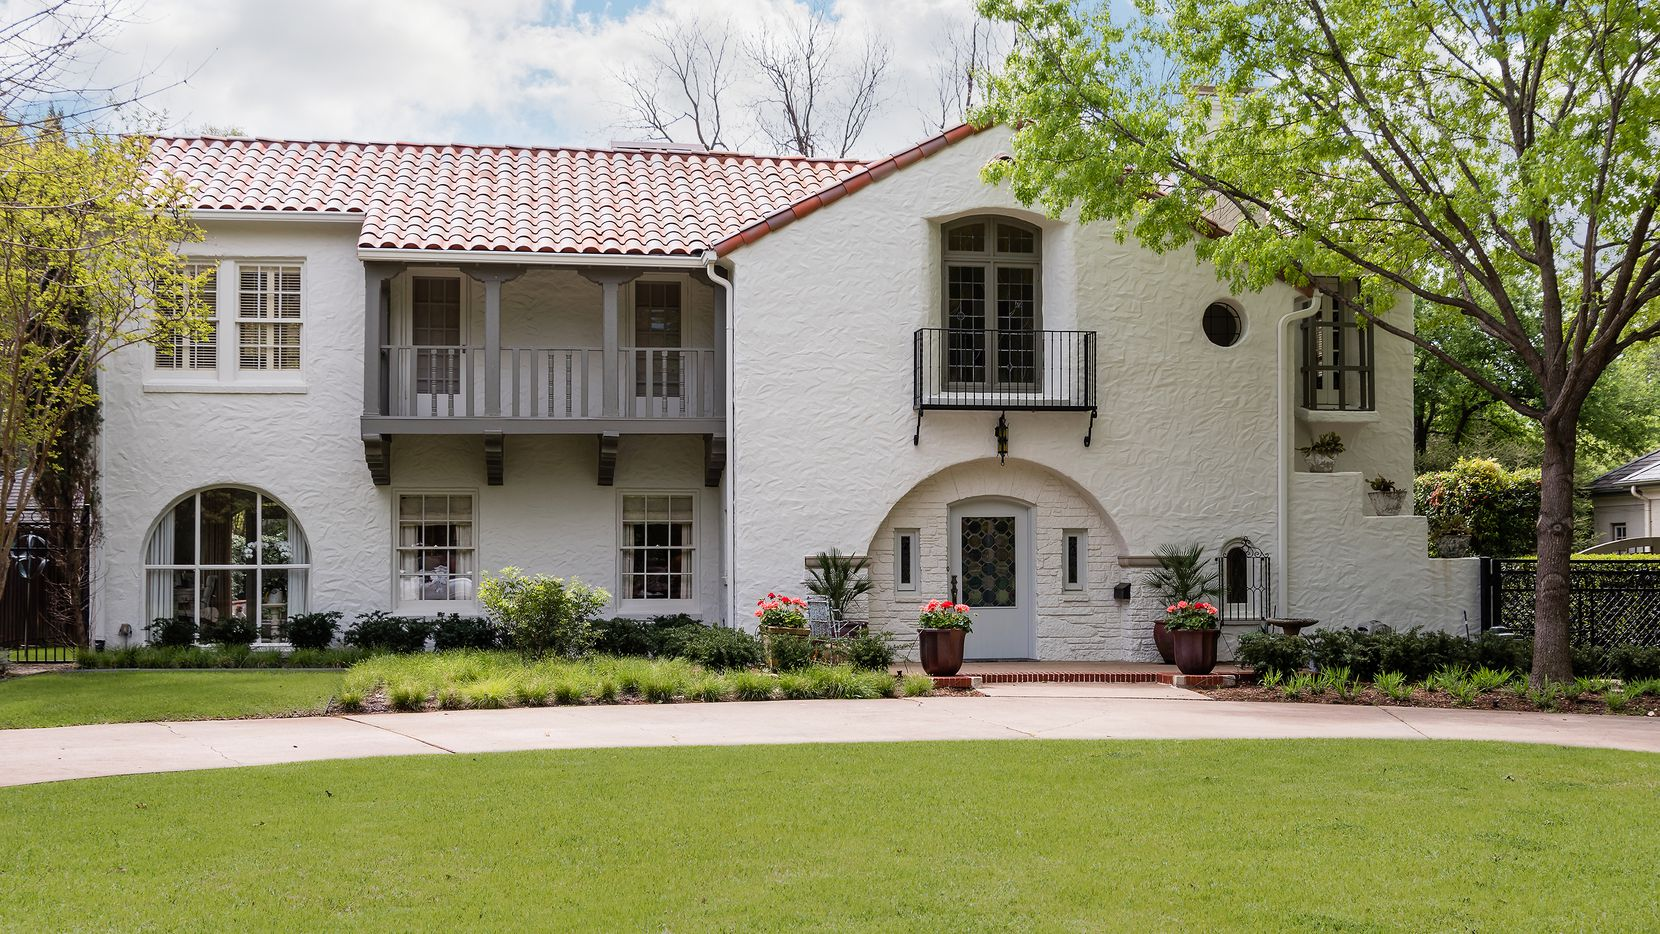 Take a look at the 1925 Fooshee and Cheek design at 5422 Montrose Drive.